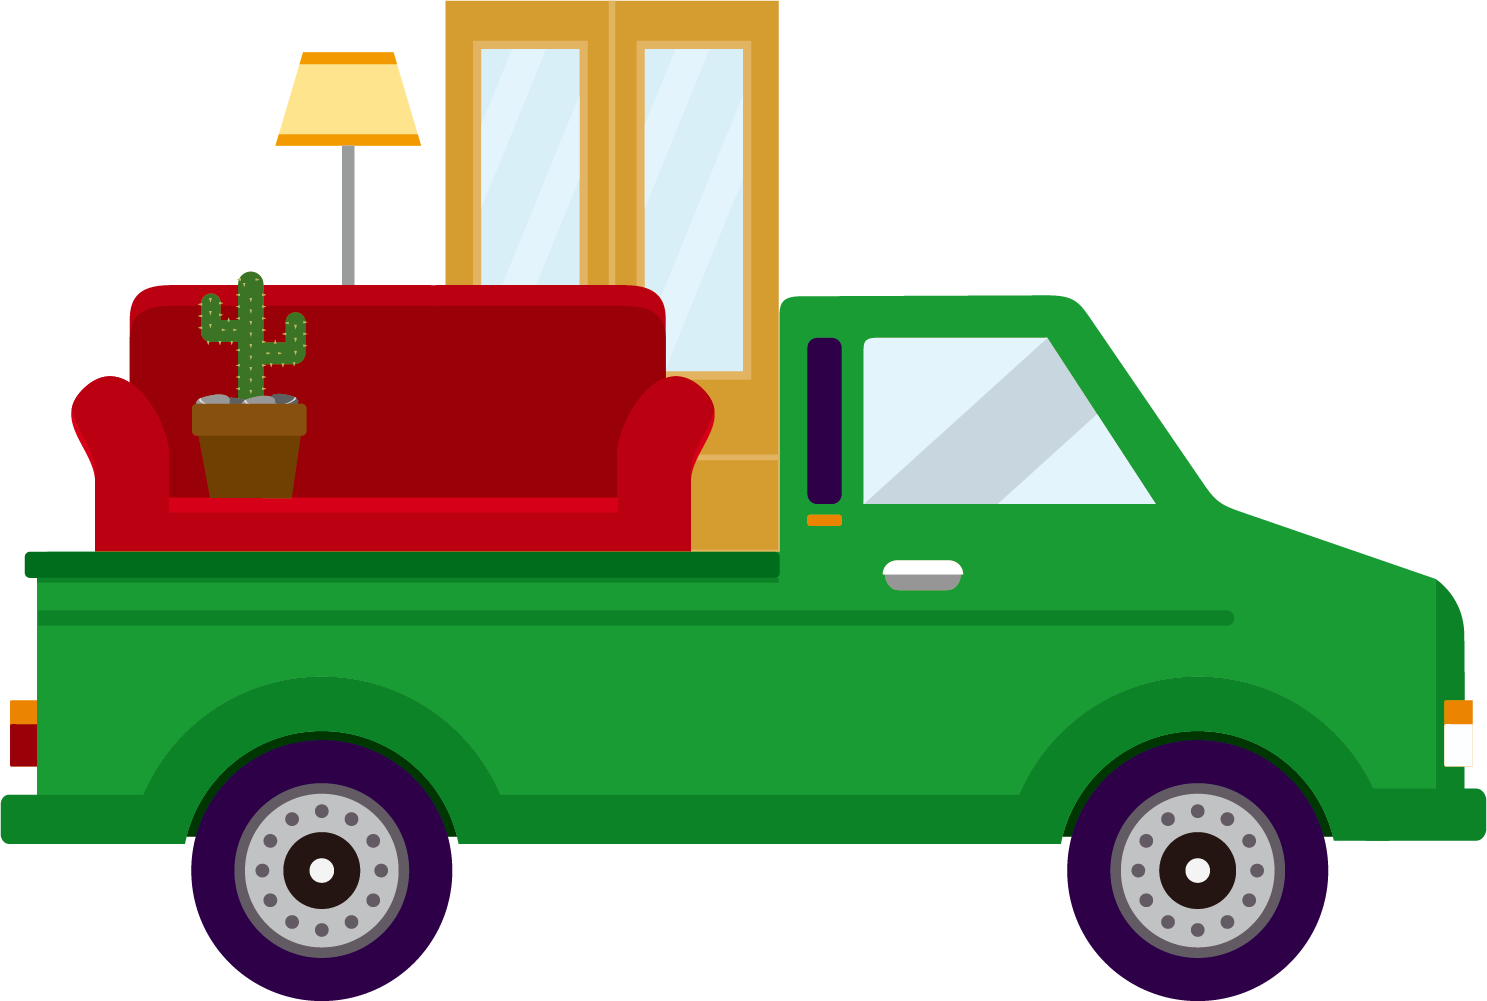 Mover chase designer relocation. Furniture clipart furniture movers